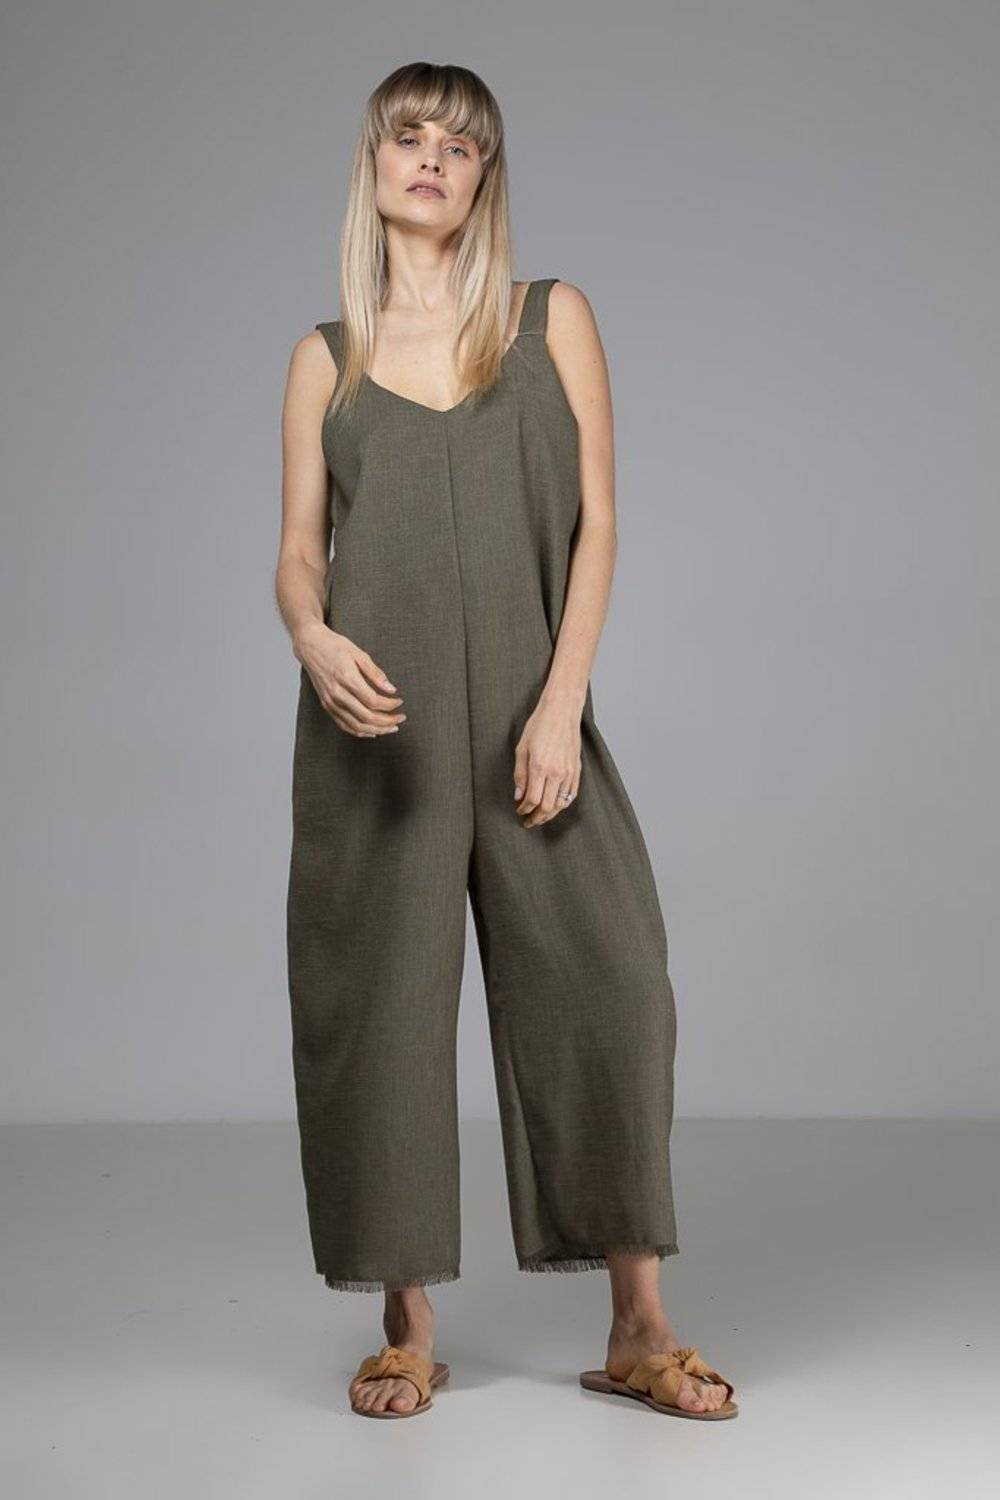 The surplus fabric Green Sadie Jumpsuit by Indecisive is a light and comfortable oversized 3/4-length jumpsuit with a daring plunging back.